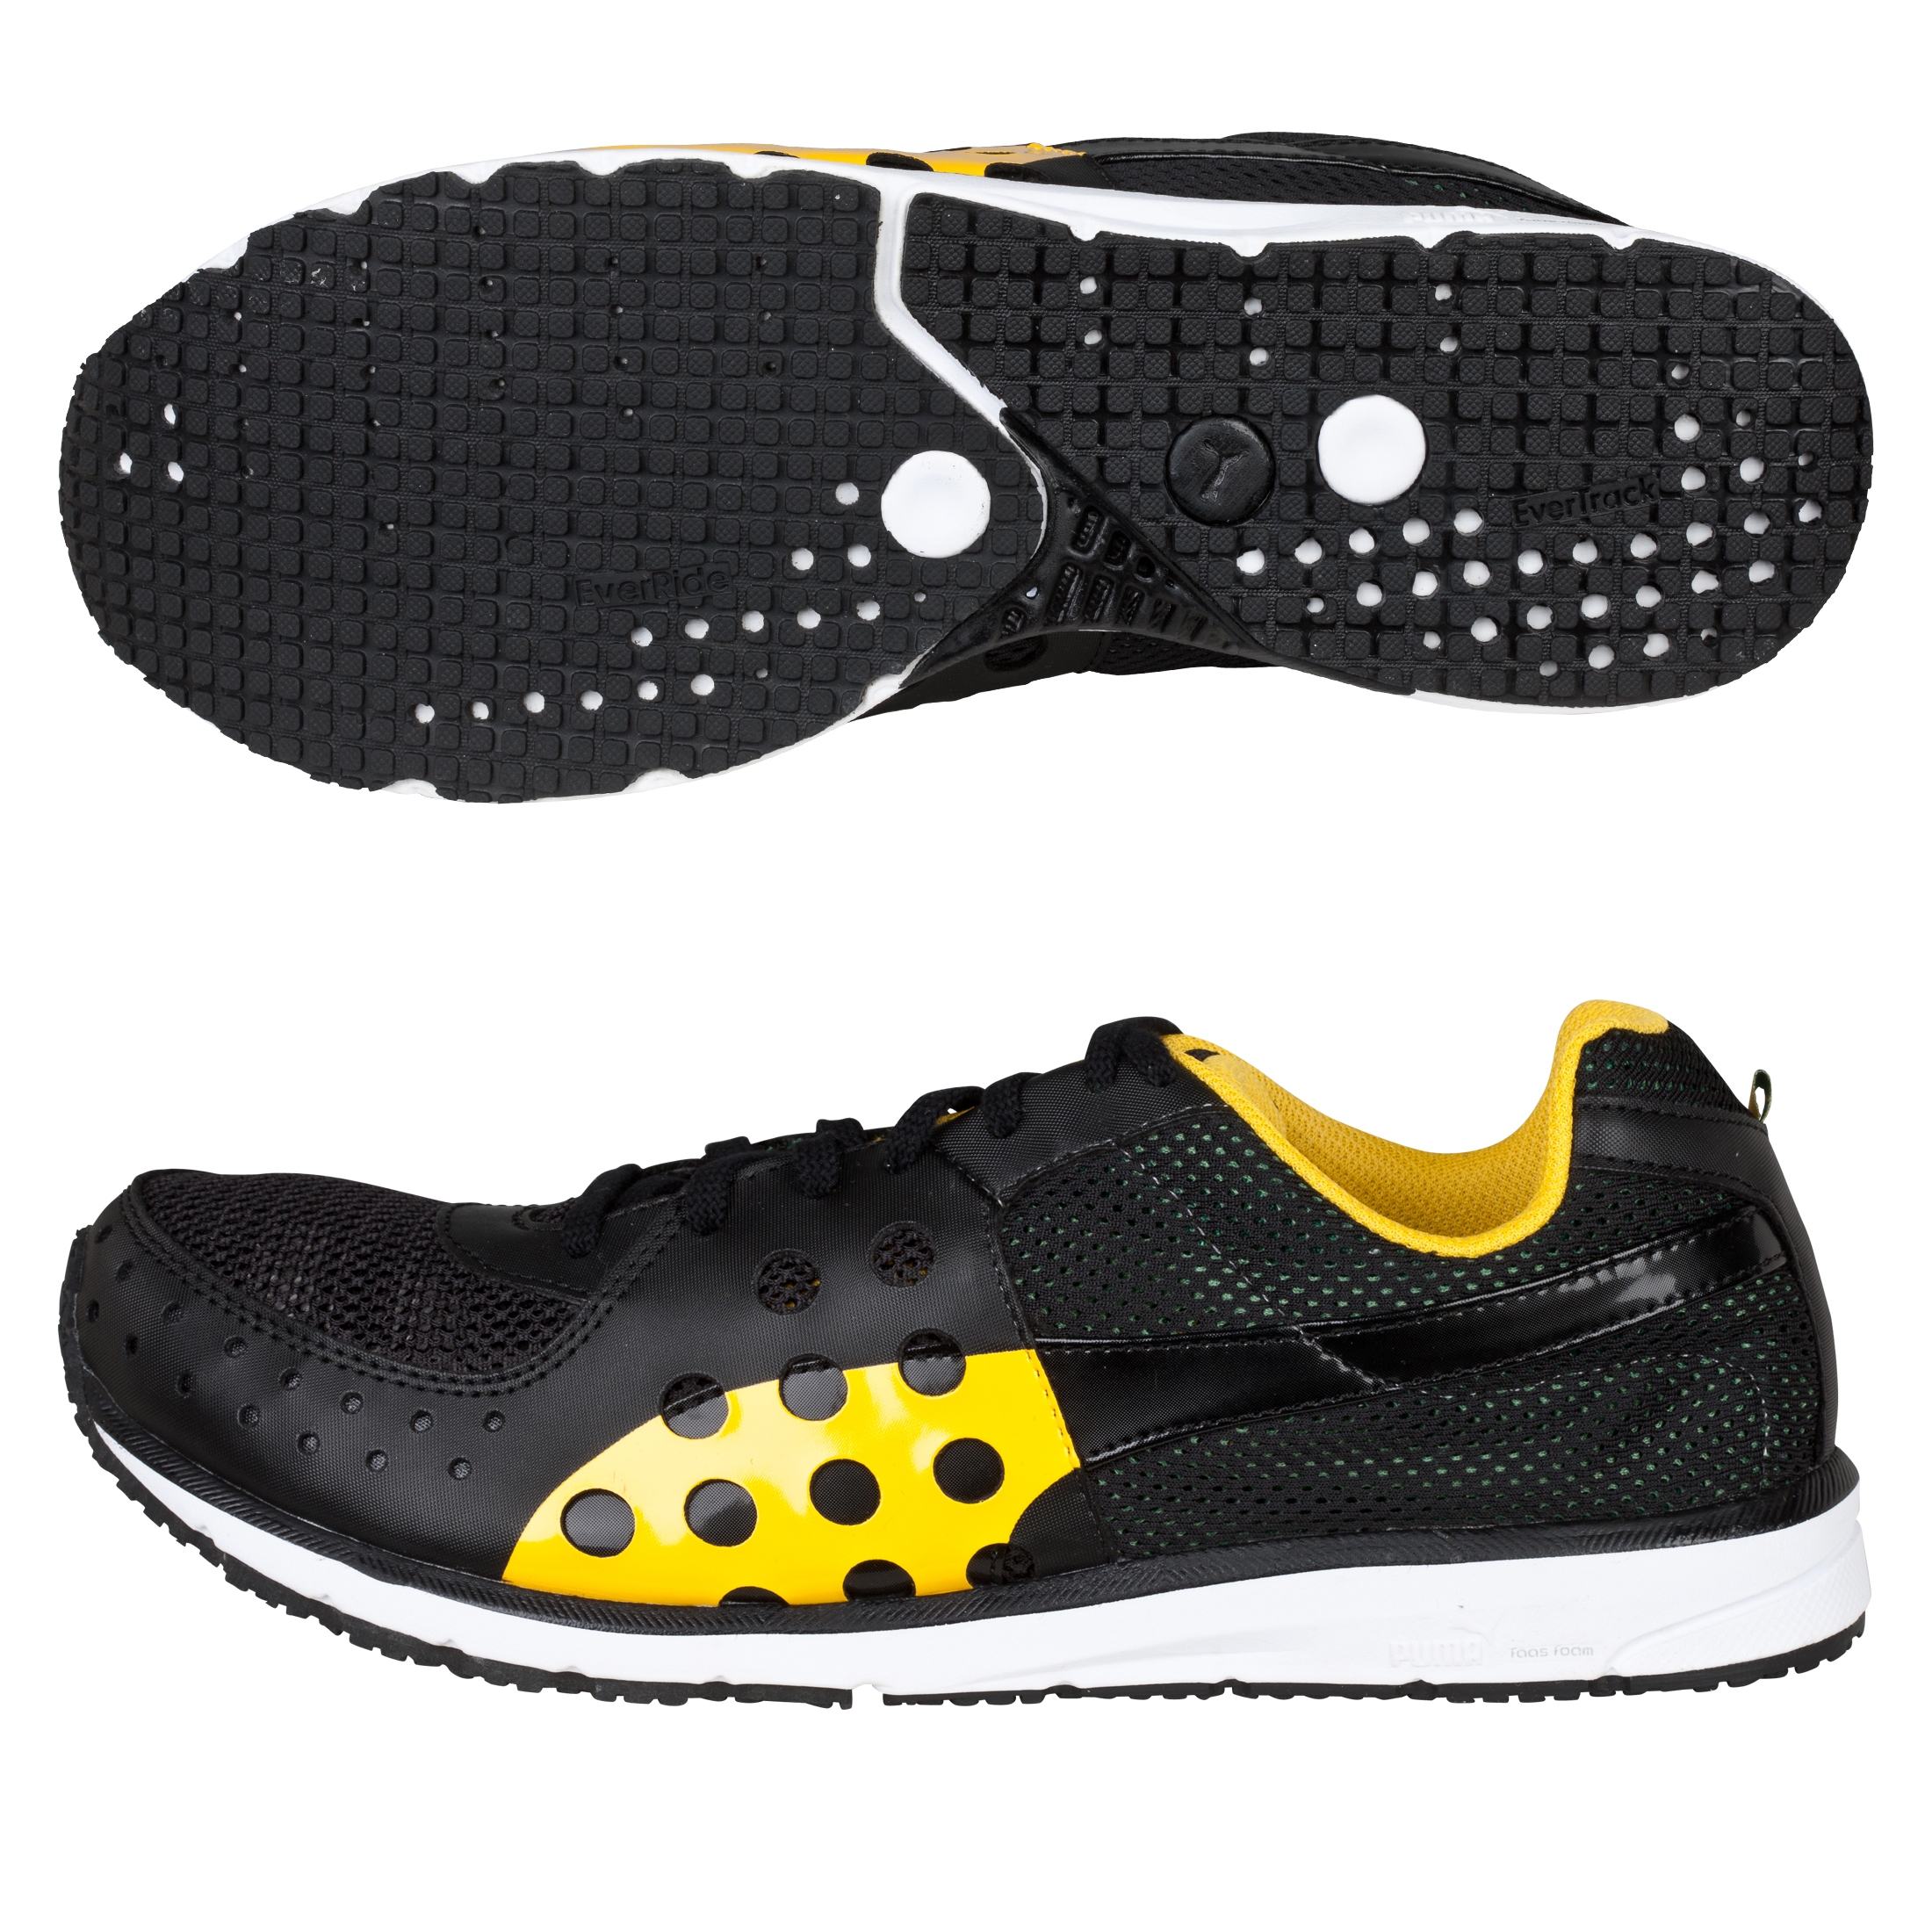 Puma Faas 300 JAM II Trainers - Black/Amazon/Spectra Yellow